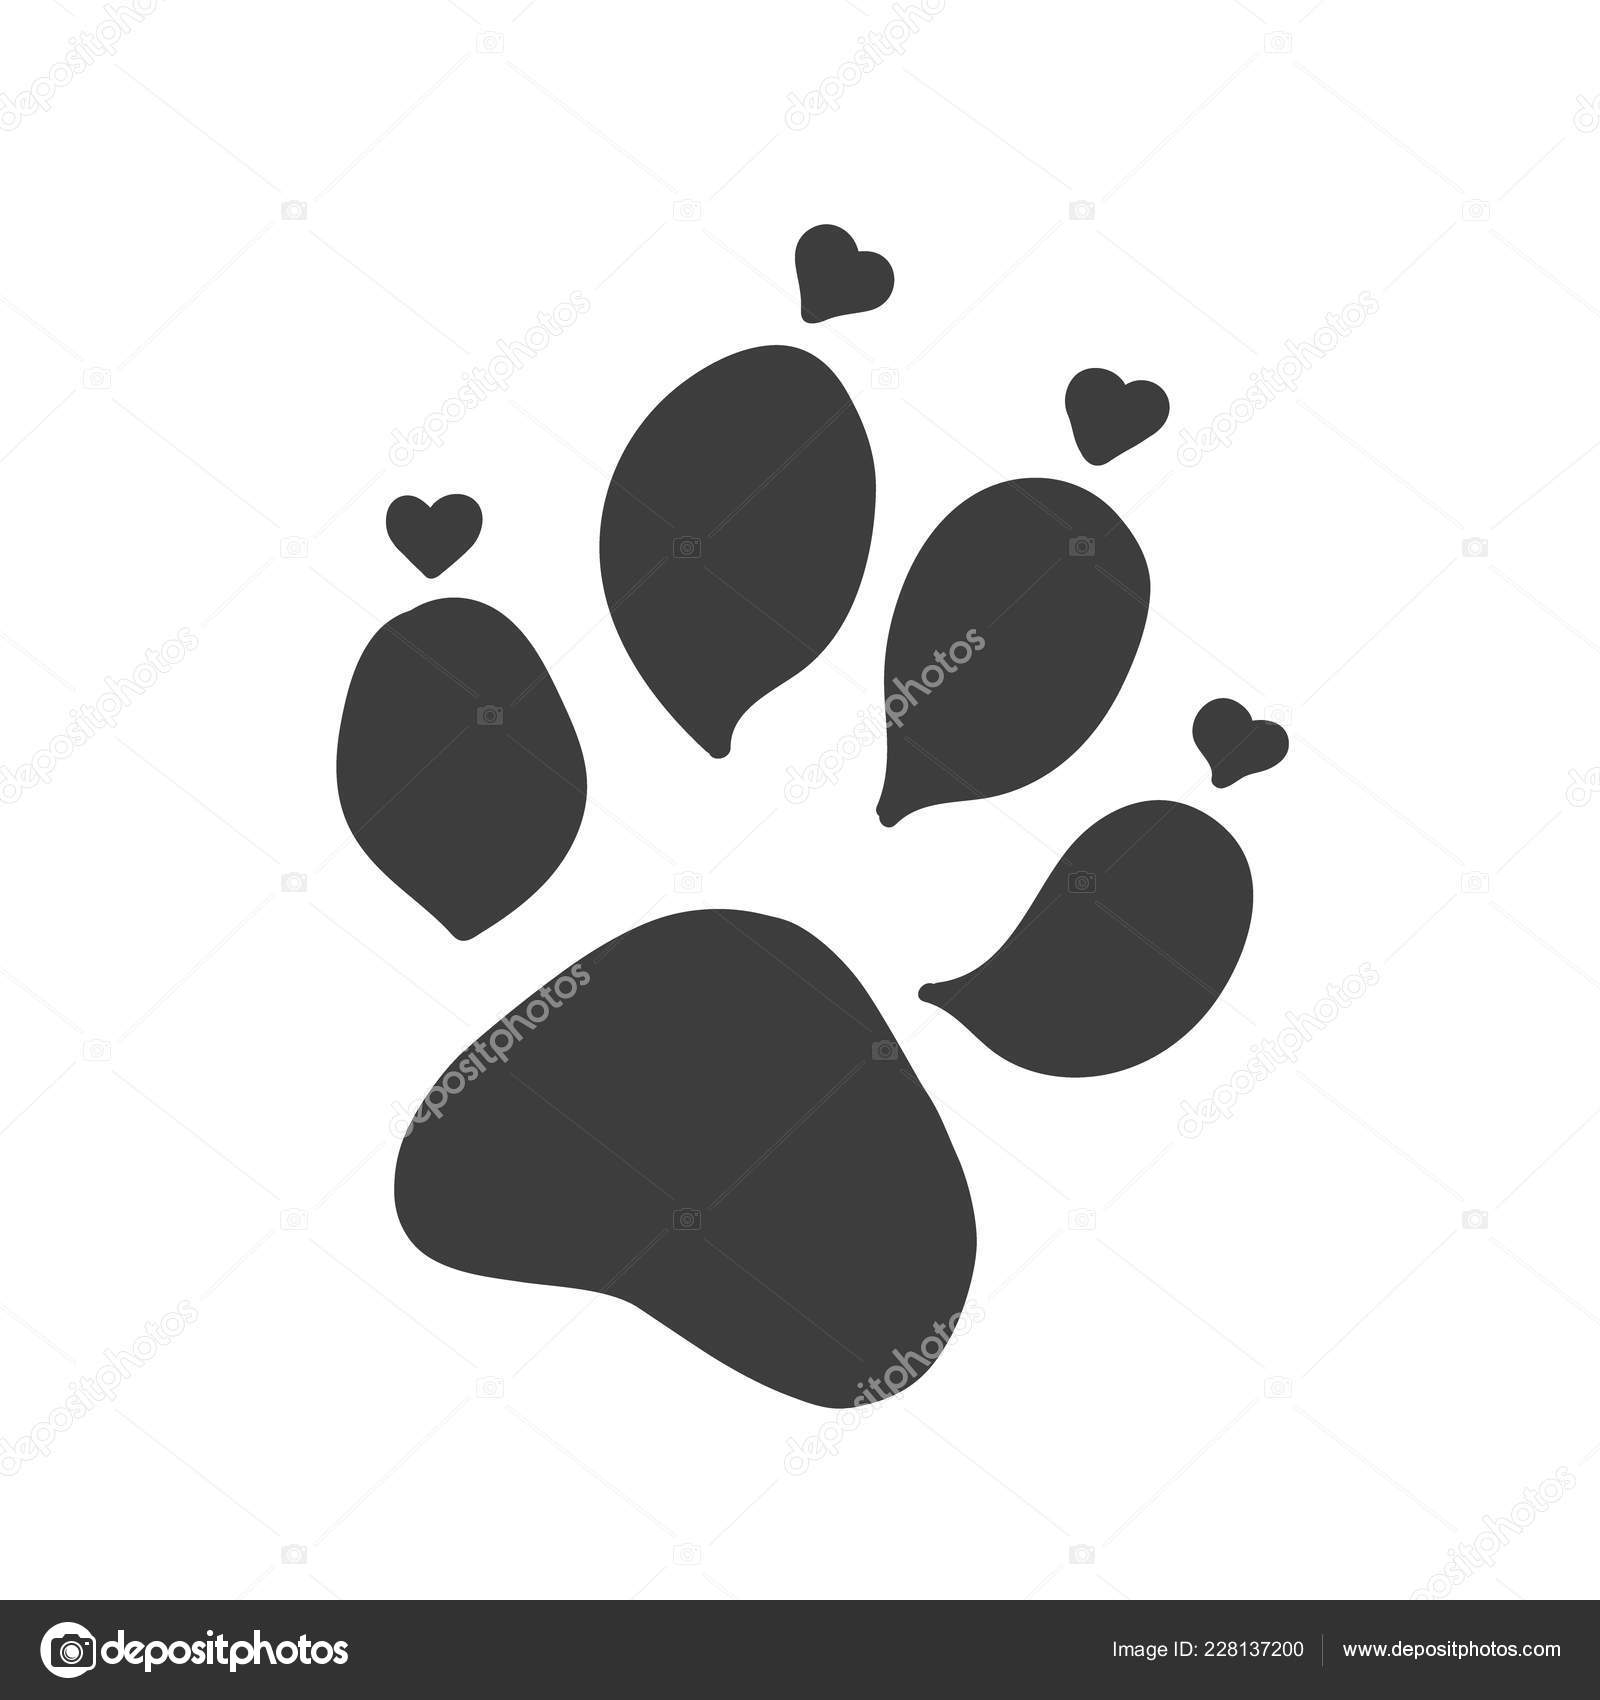 Pictures : cat paw print tattoo | Cat or dog paw print